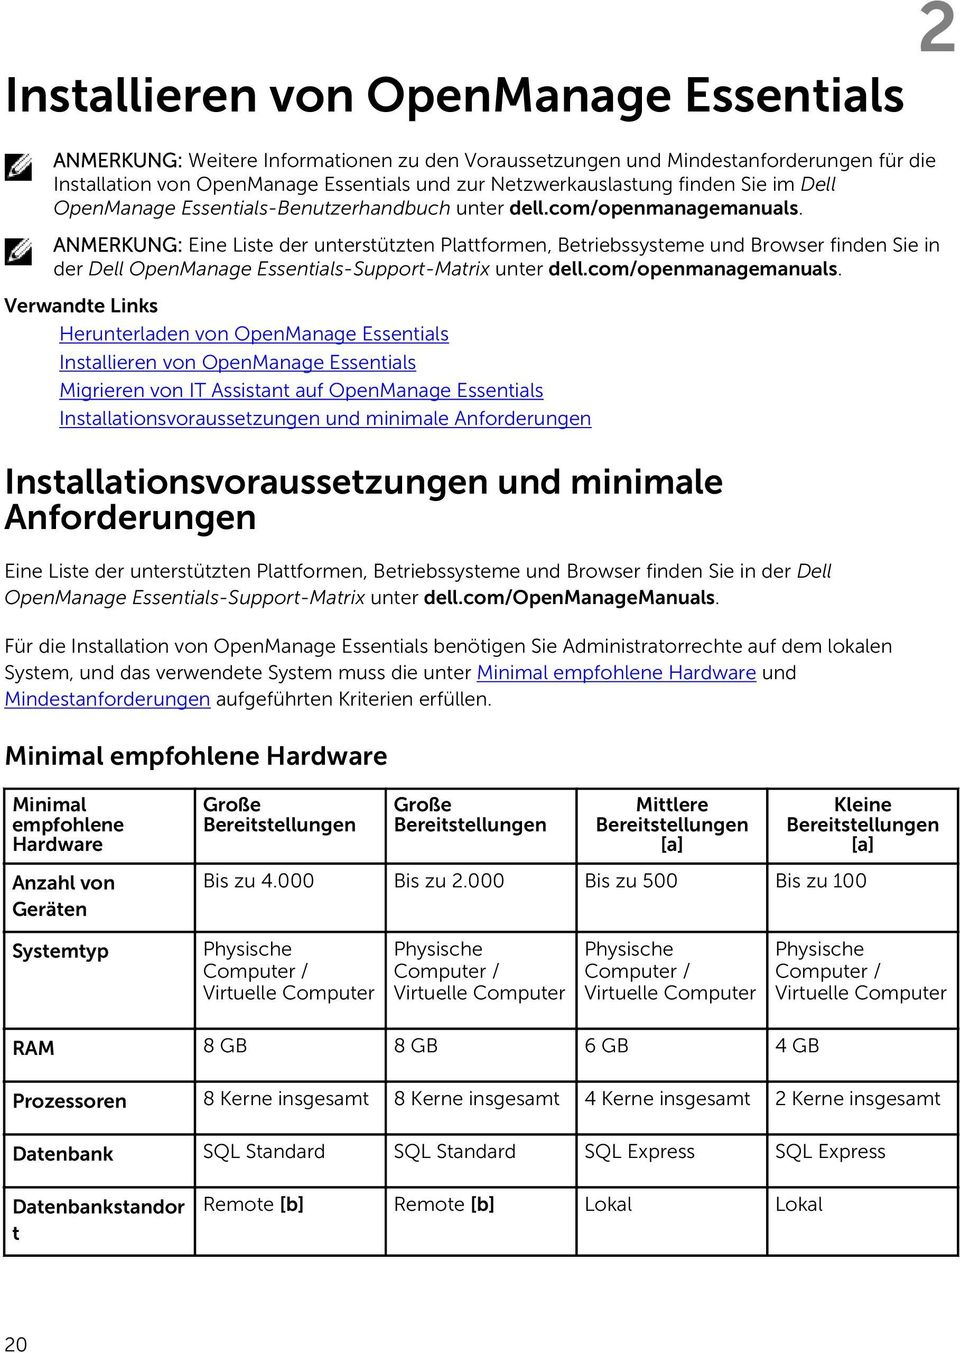 ANMERKUNG: Eine Liste der unterstützten Plattformen, Betriebssysteme und Browser finden Sie in der Dell OpenManage Essentials-Support-Matrix unter dell.com/openmanagemanuals.